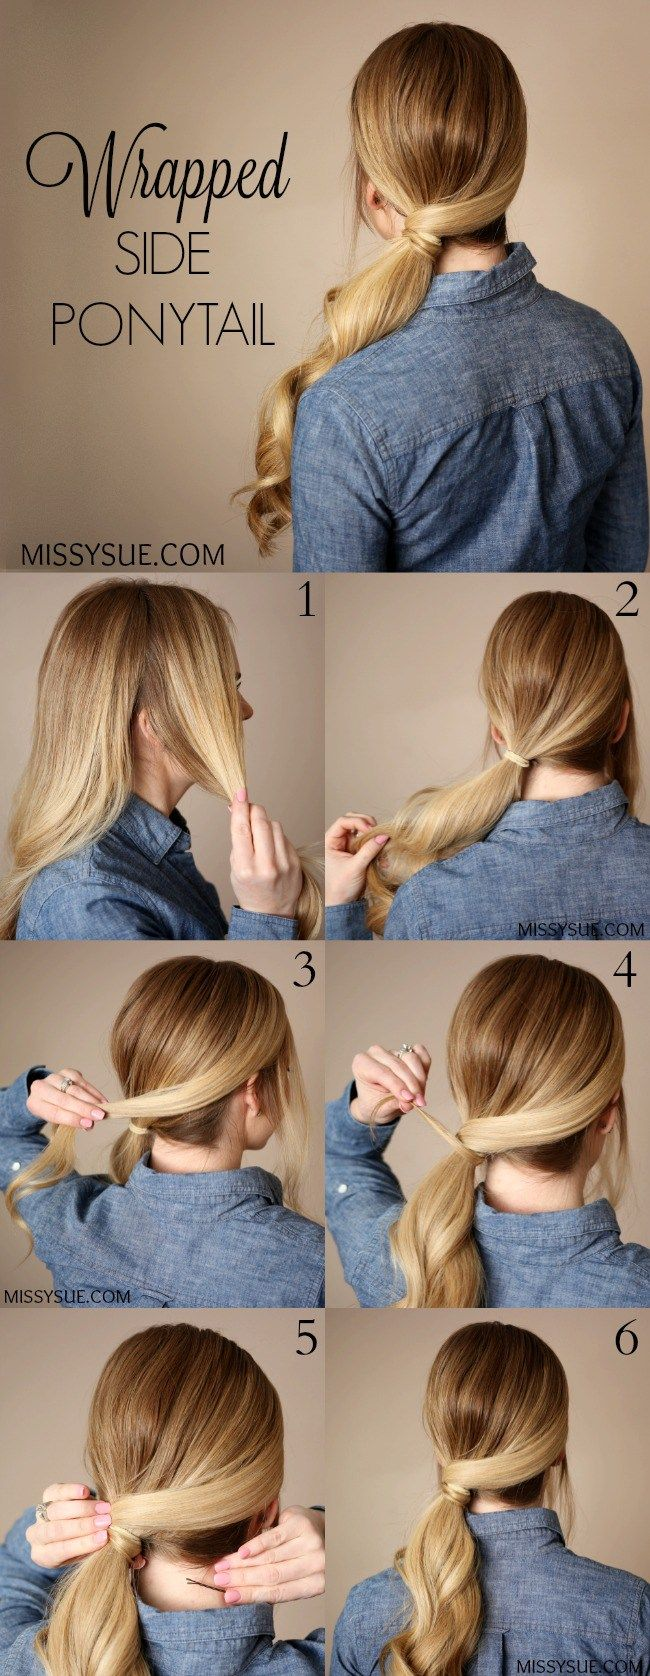 Wrapped Side Ponytail